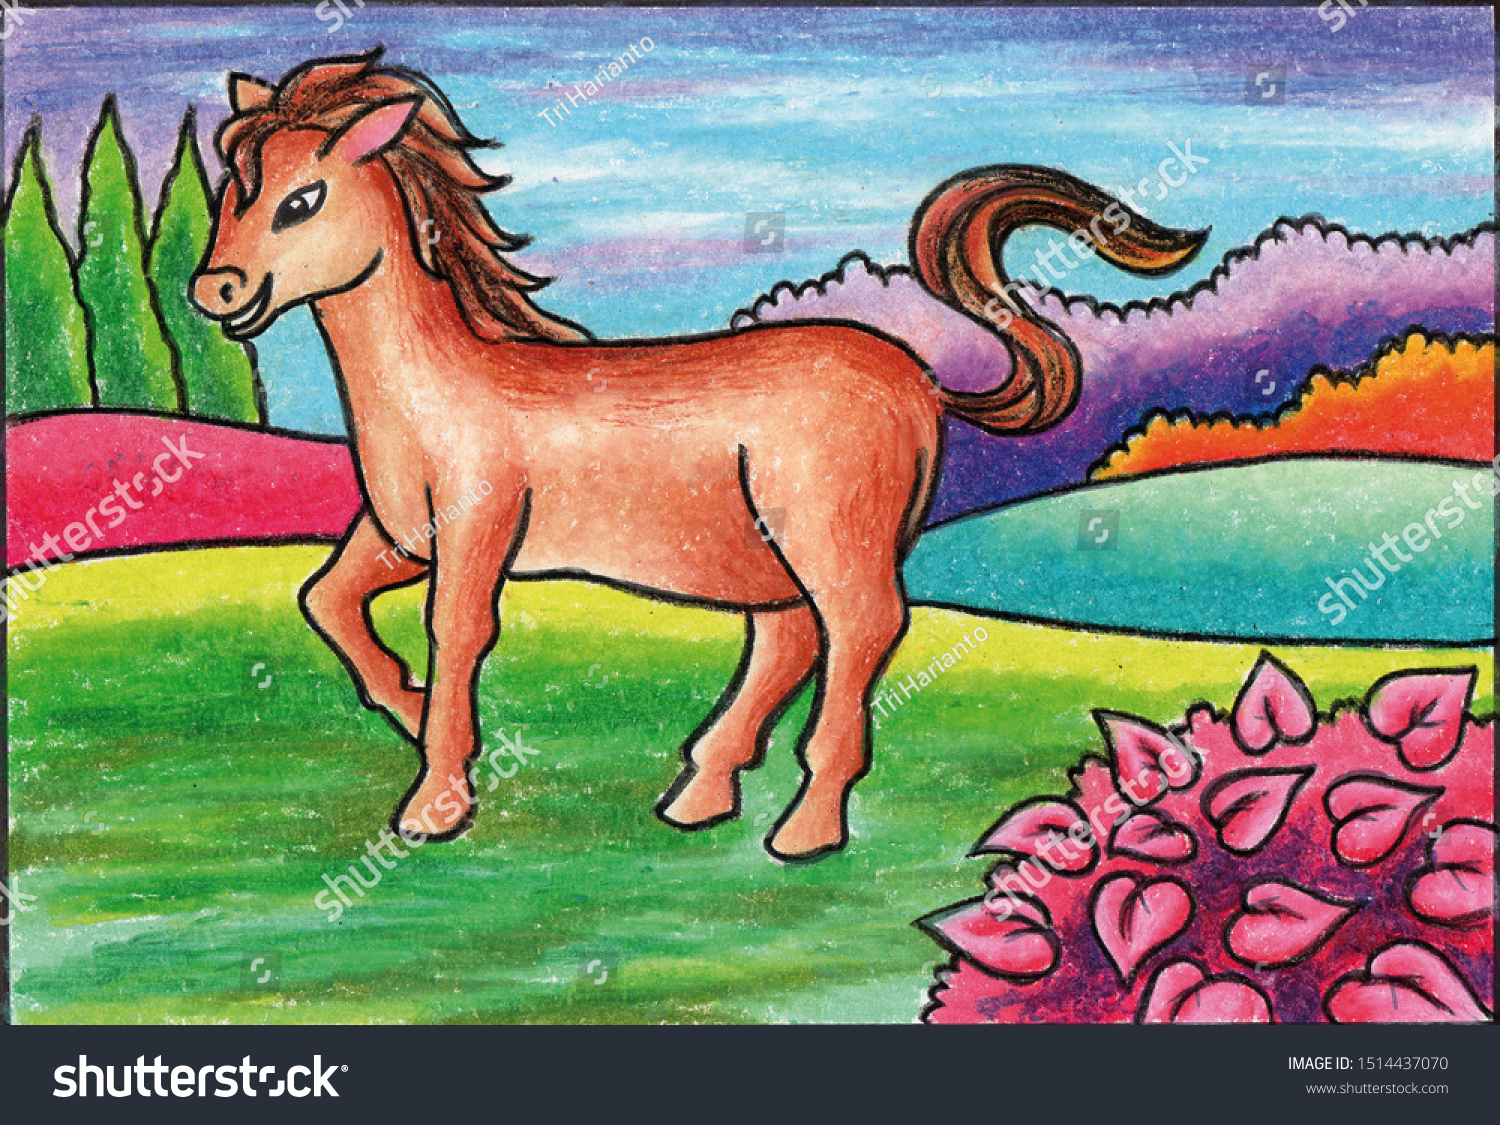 Painting Horse Using Oil Pastels Stock Illustration 1514437070